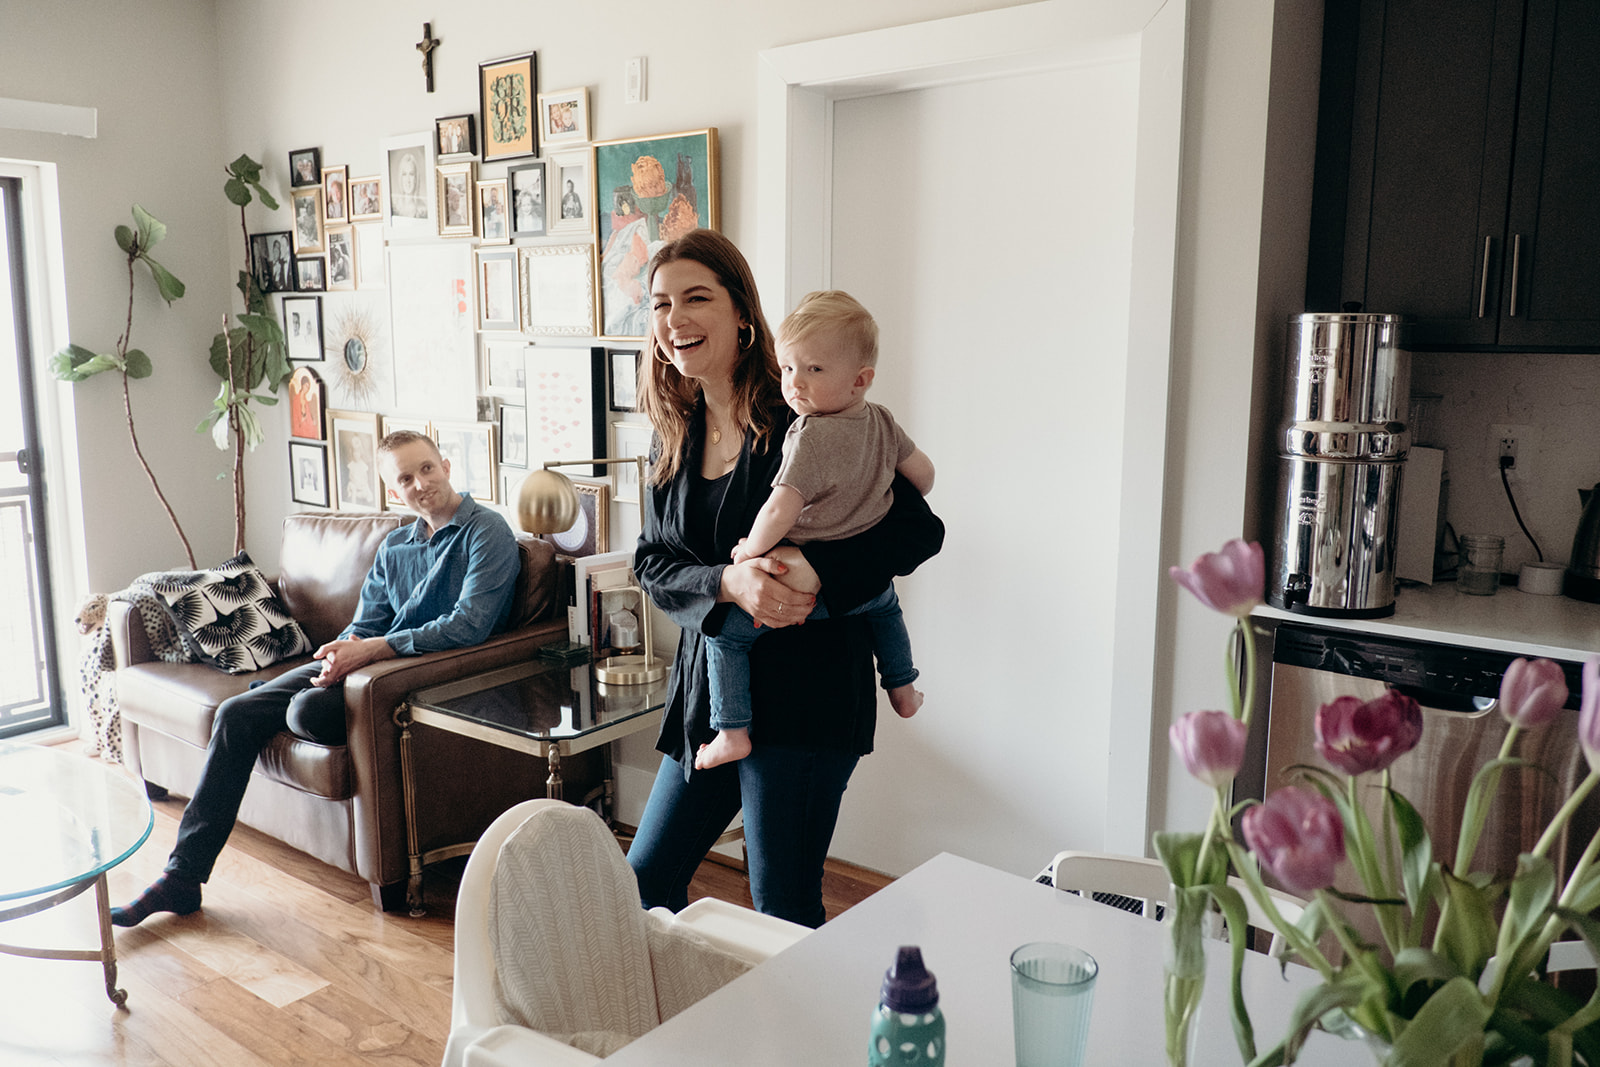 A woman holds her infant son and laughs while her husband looks on in their apartment.